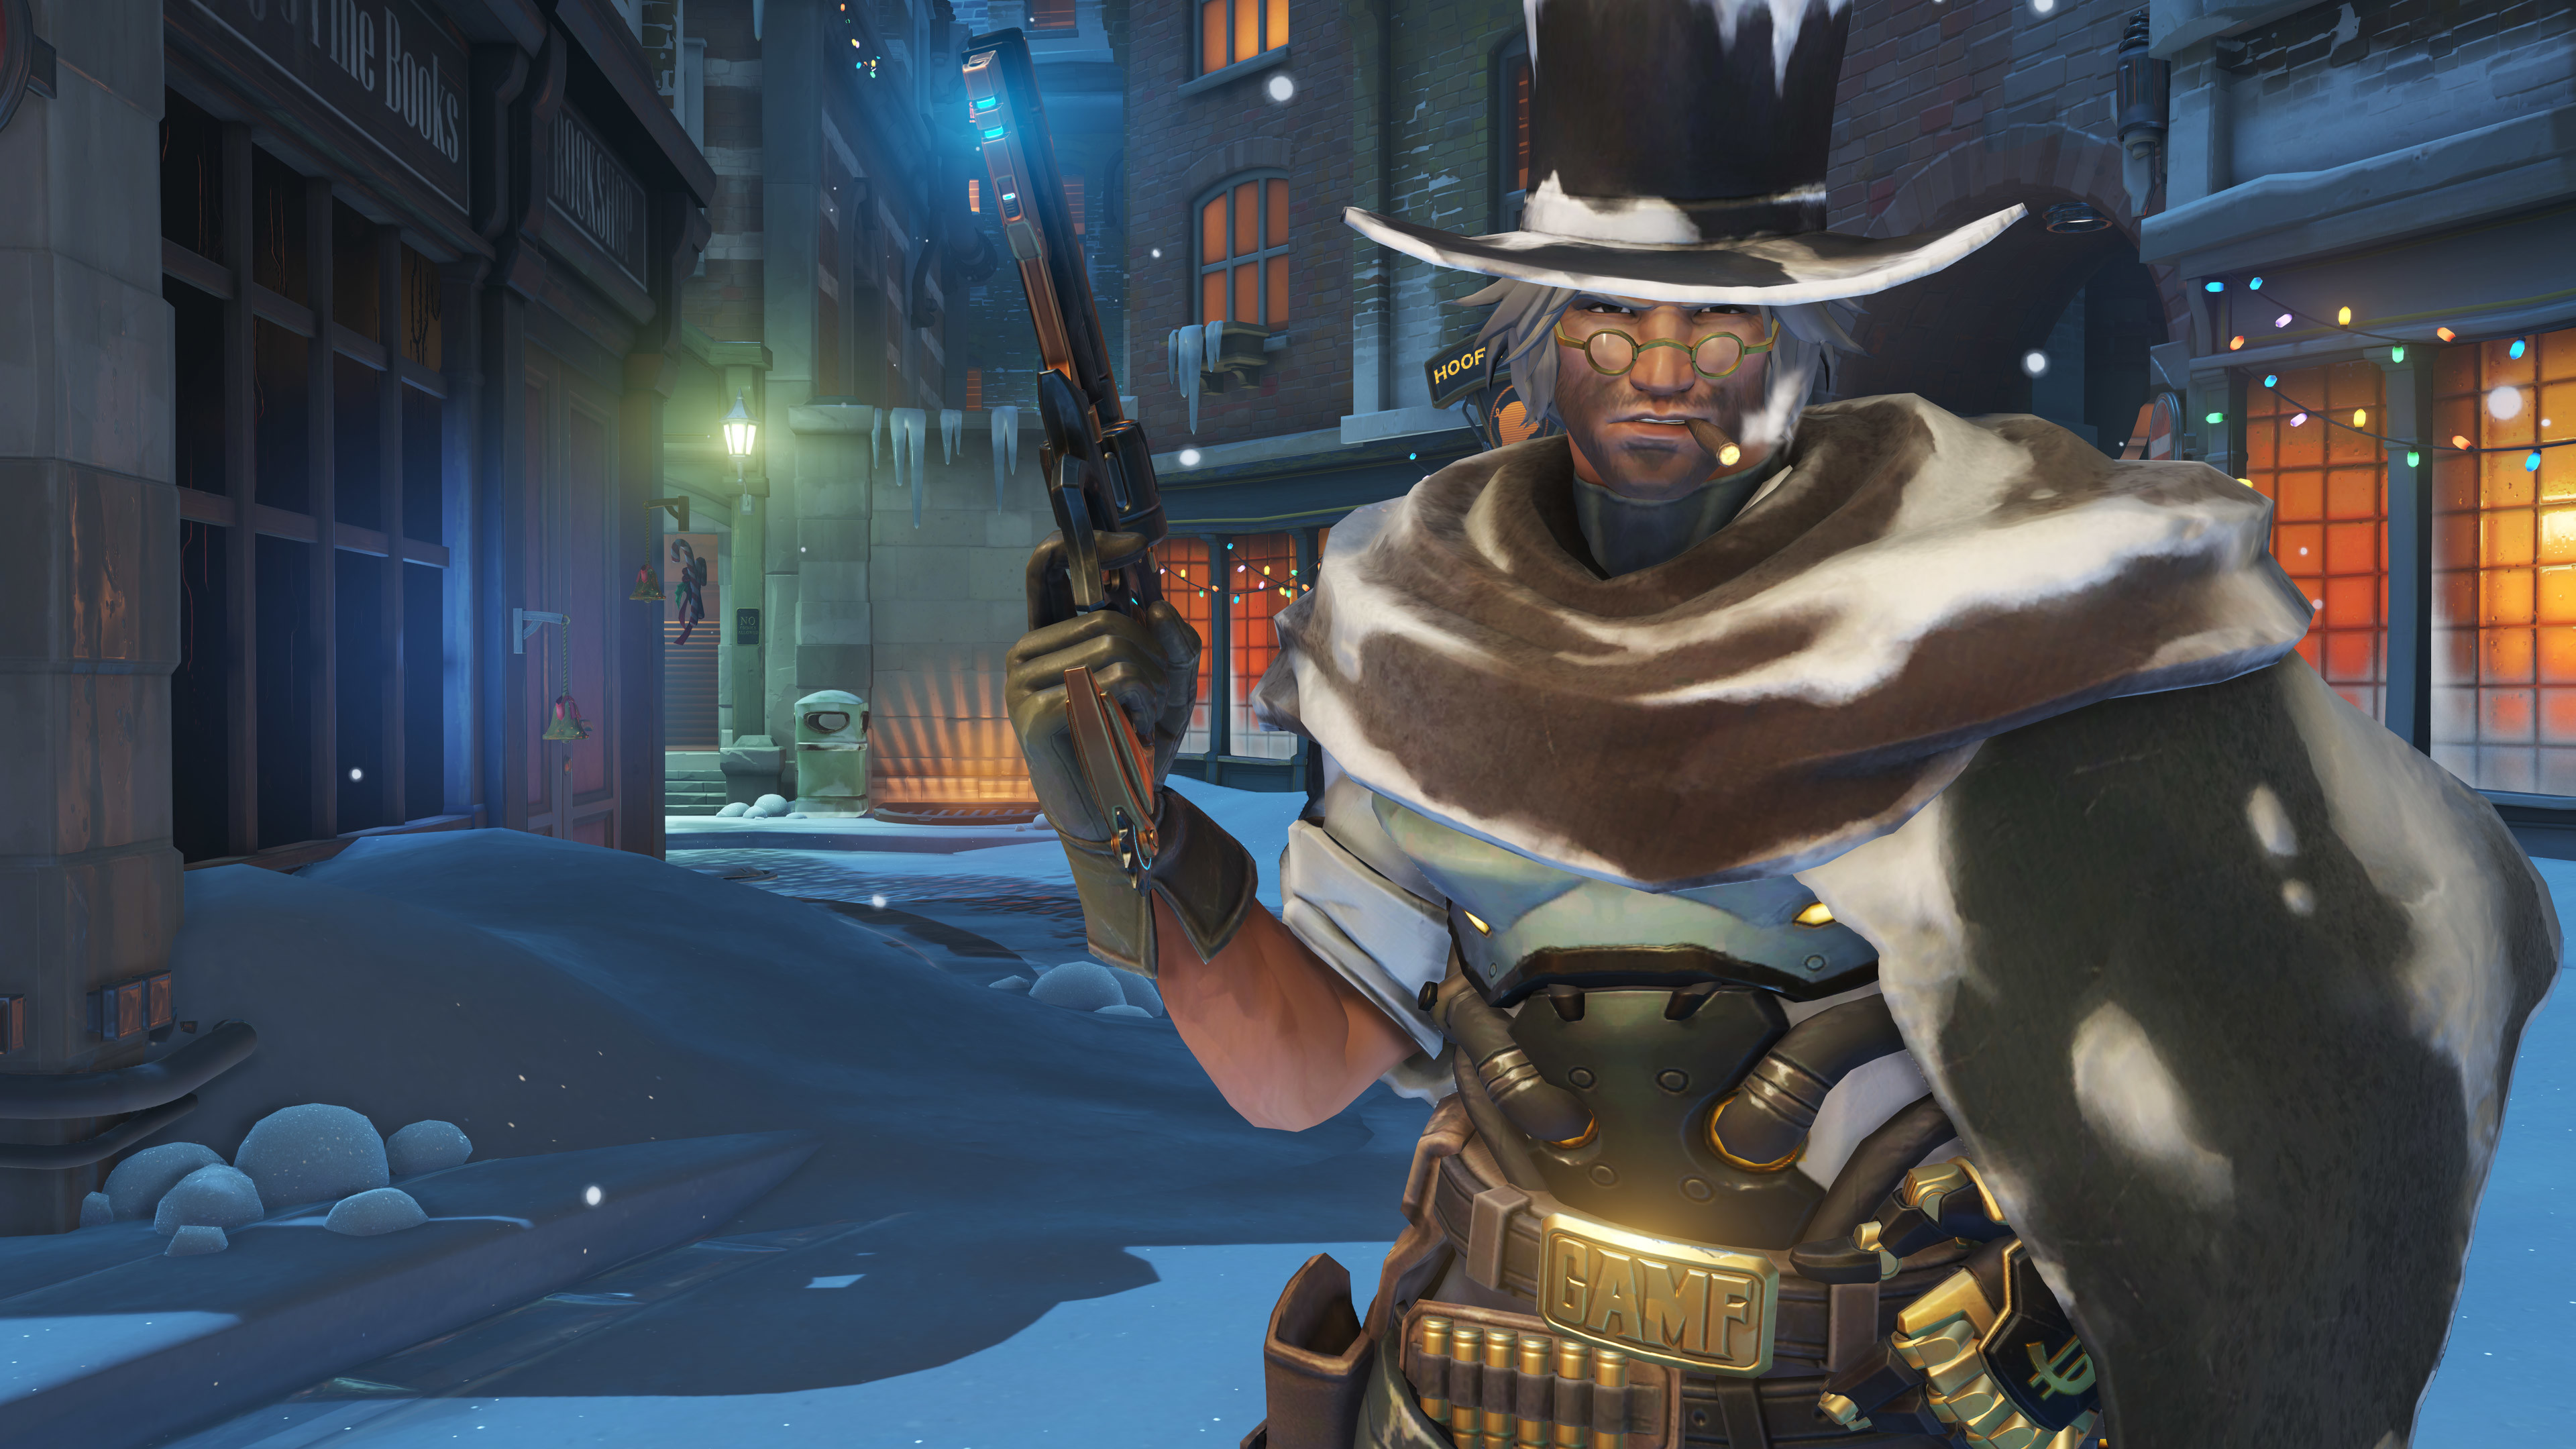 Res: 3840x2160, Overwatch's holiday update arrives with new loot, new game mode - Polygon